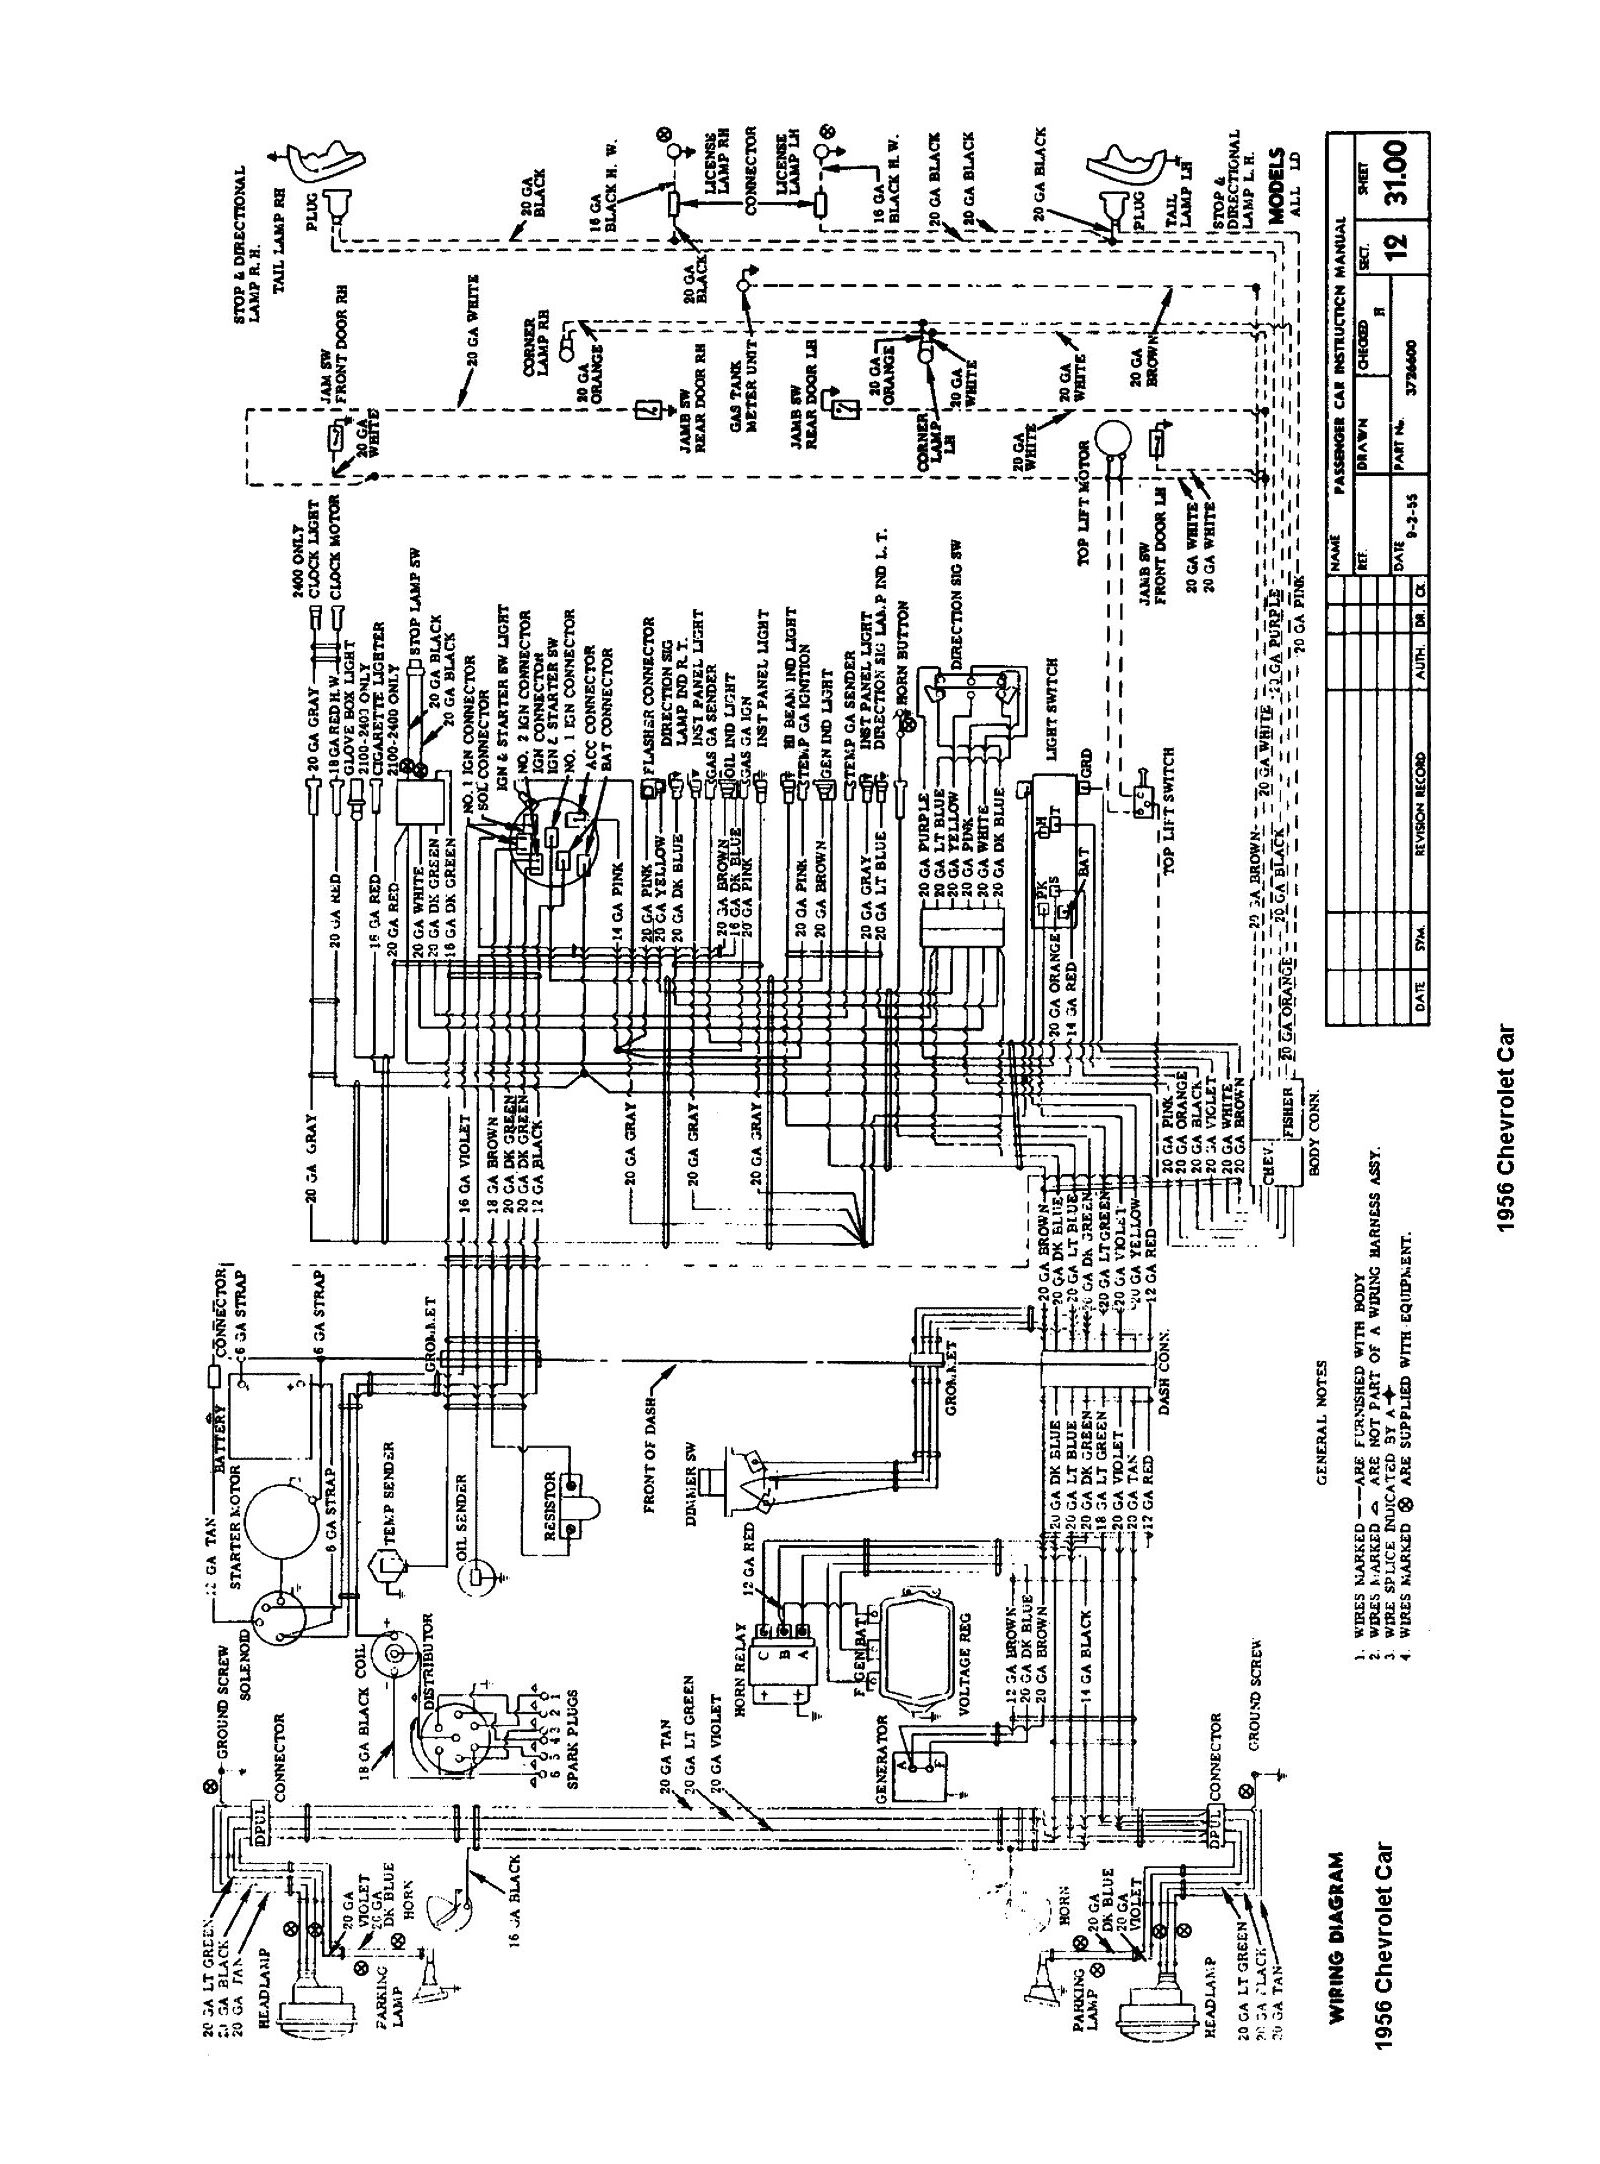 1958 Chevy Bel Air Wiring Diagram, 1958, Free Engine Image